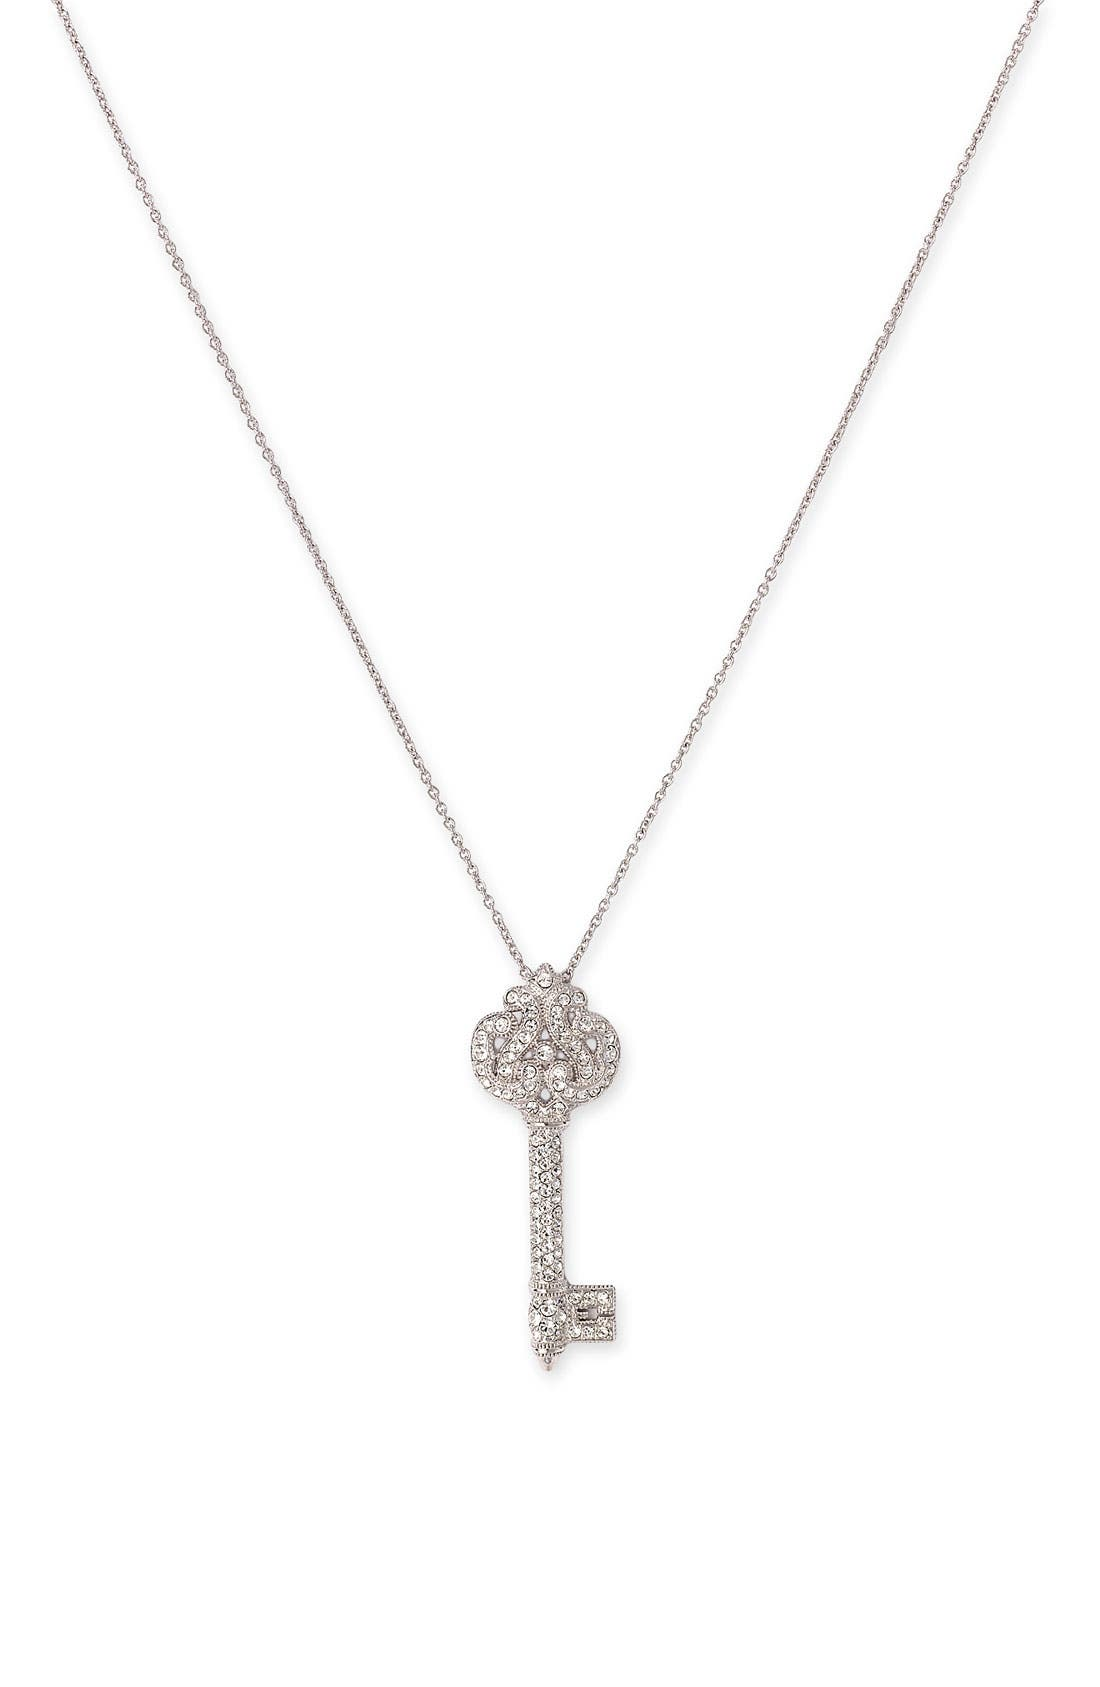 Main Image - Nadri 'Cartouche' Key Pendant Necklace